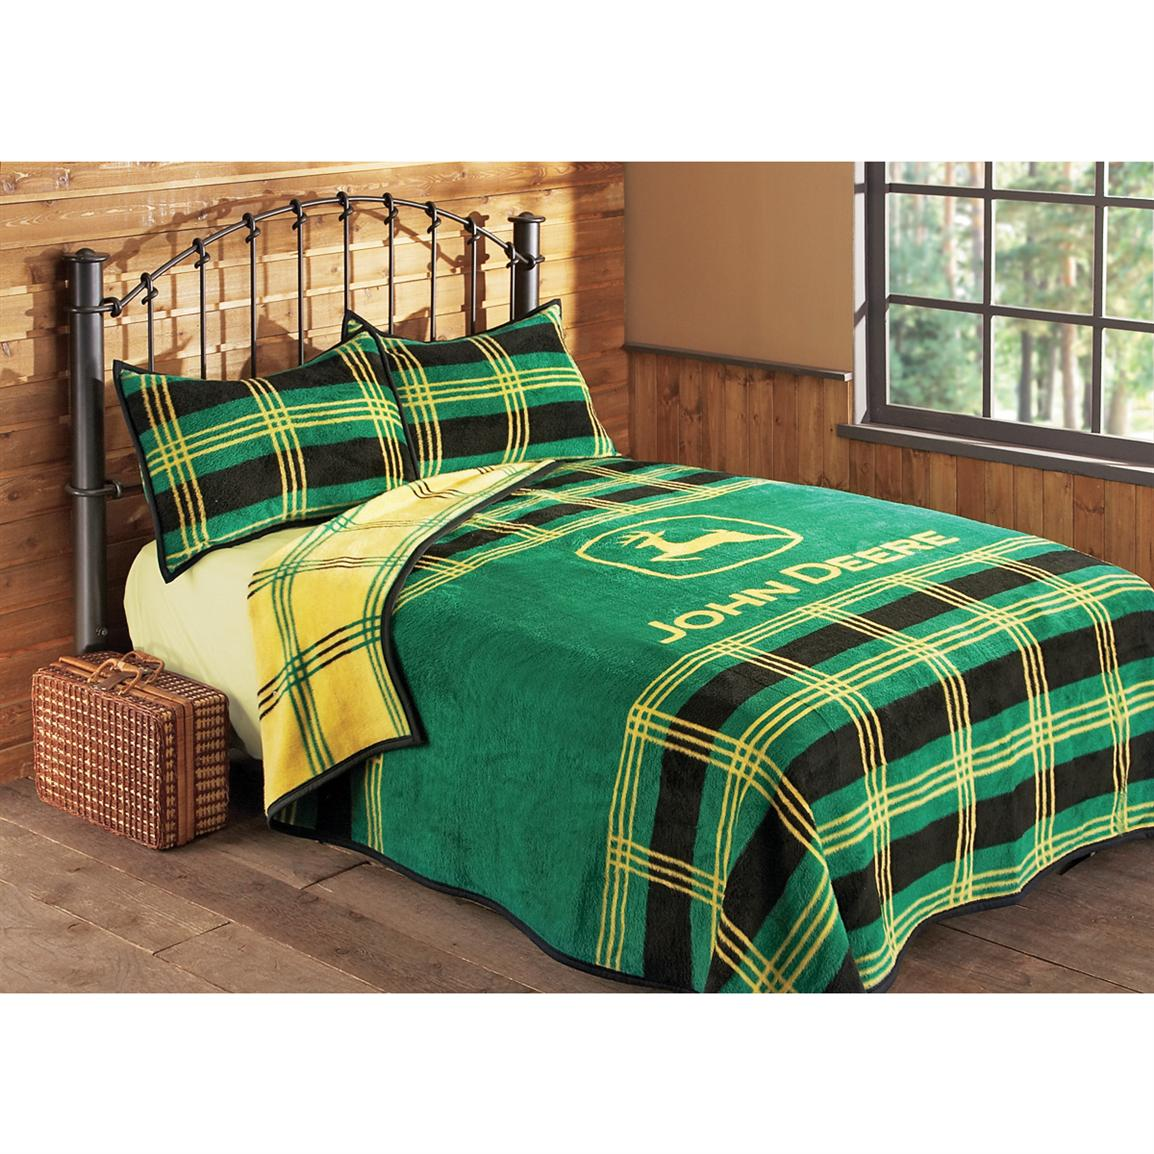 John Deere Bedding | John Deere Rug | John Deere Room Accessories